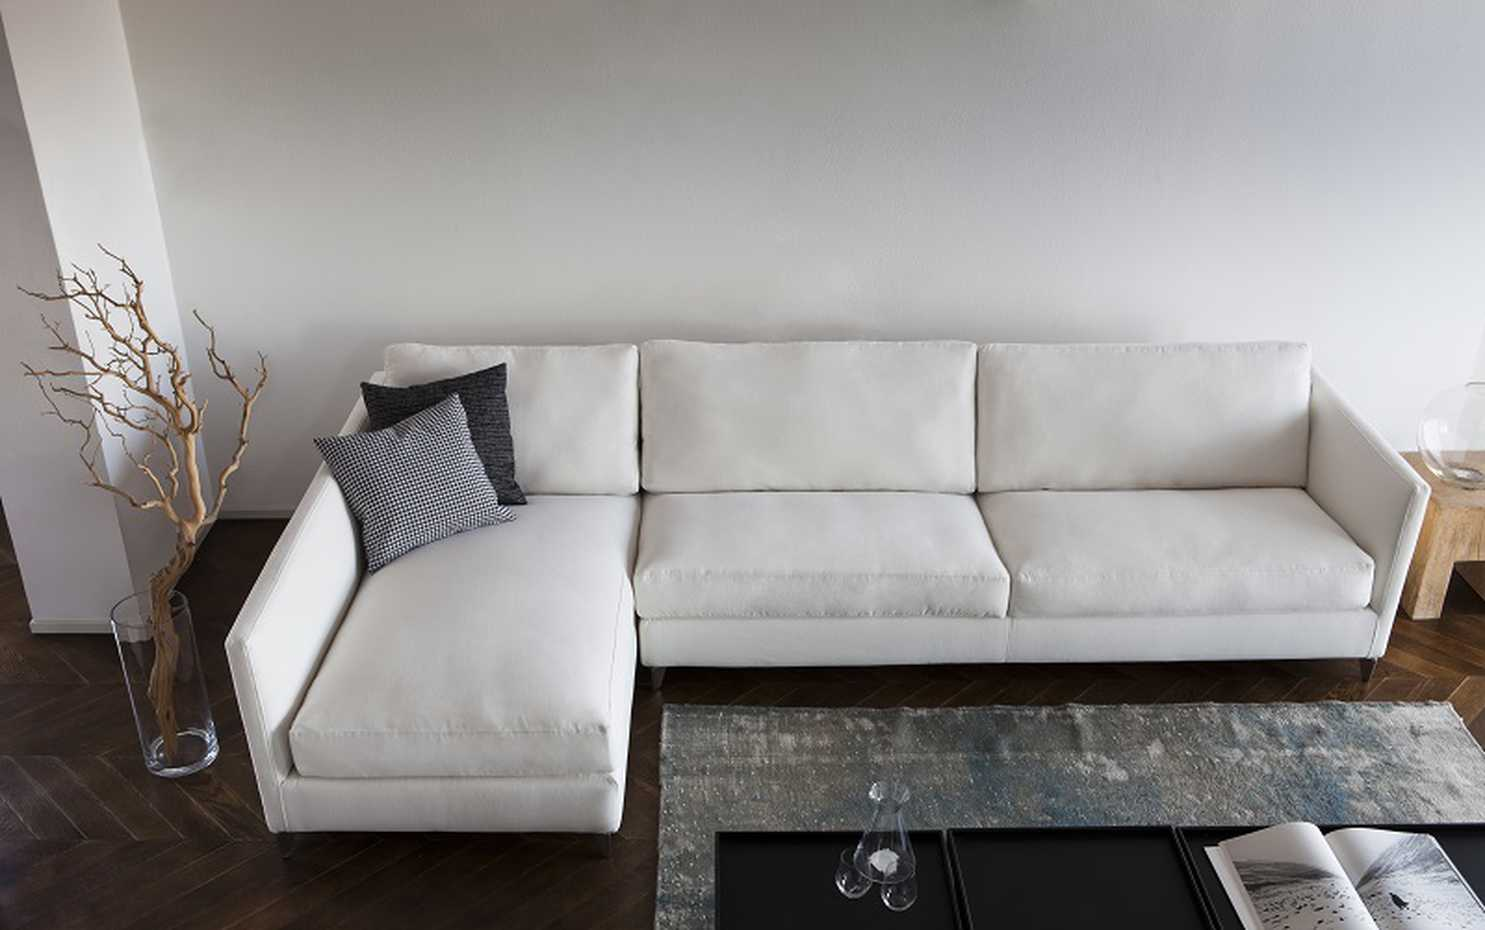 Zone Slim by Vibieffe product image 2